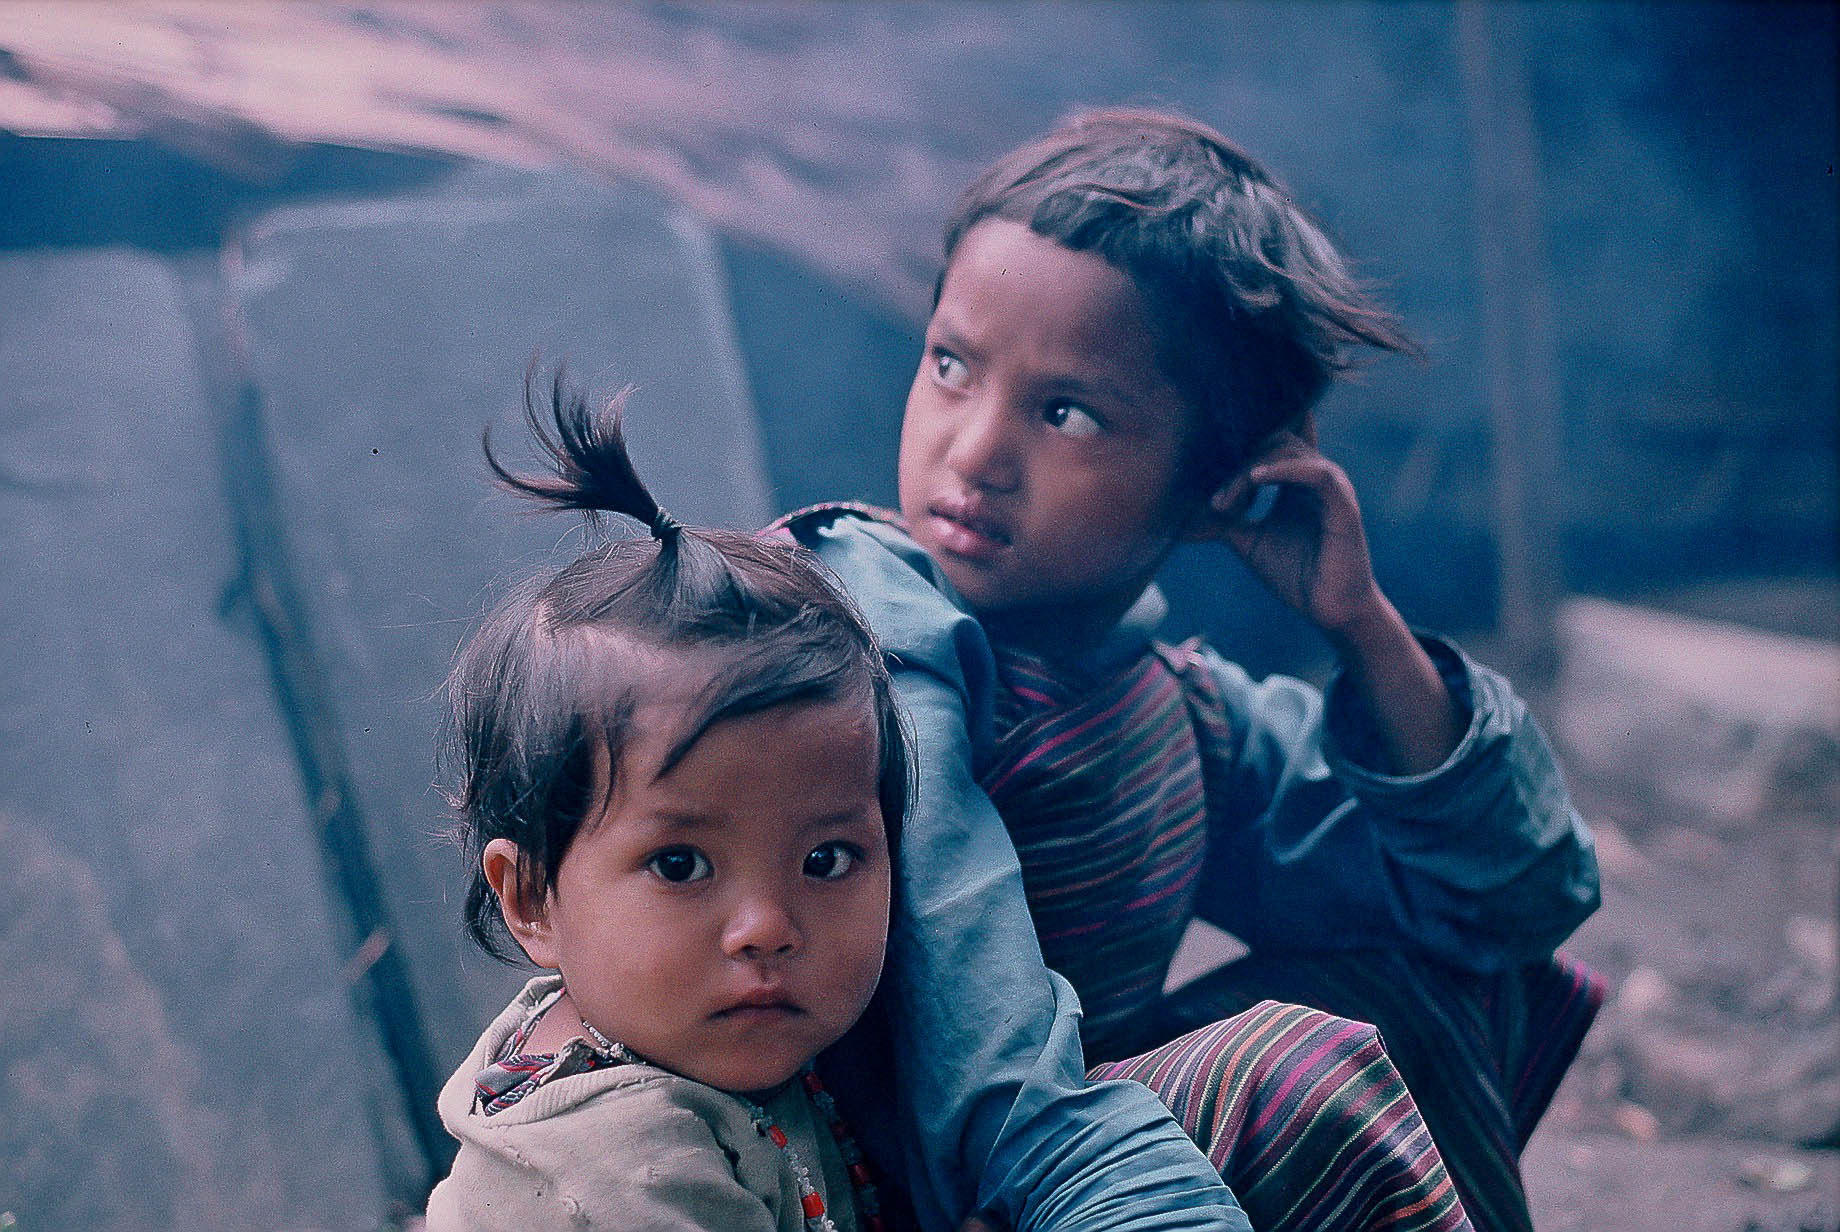 Photograph bhutanese children by helmut flatscher on 500px